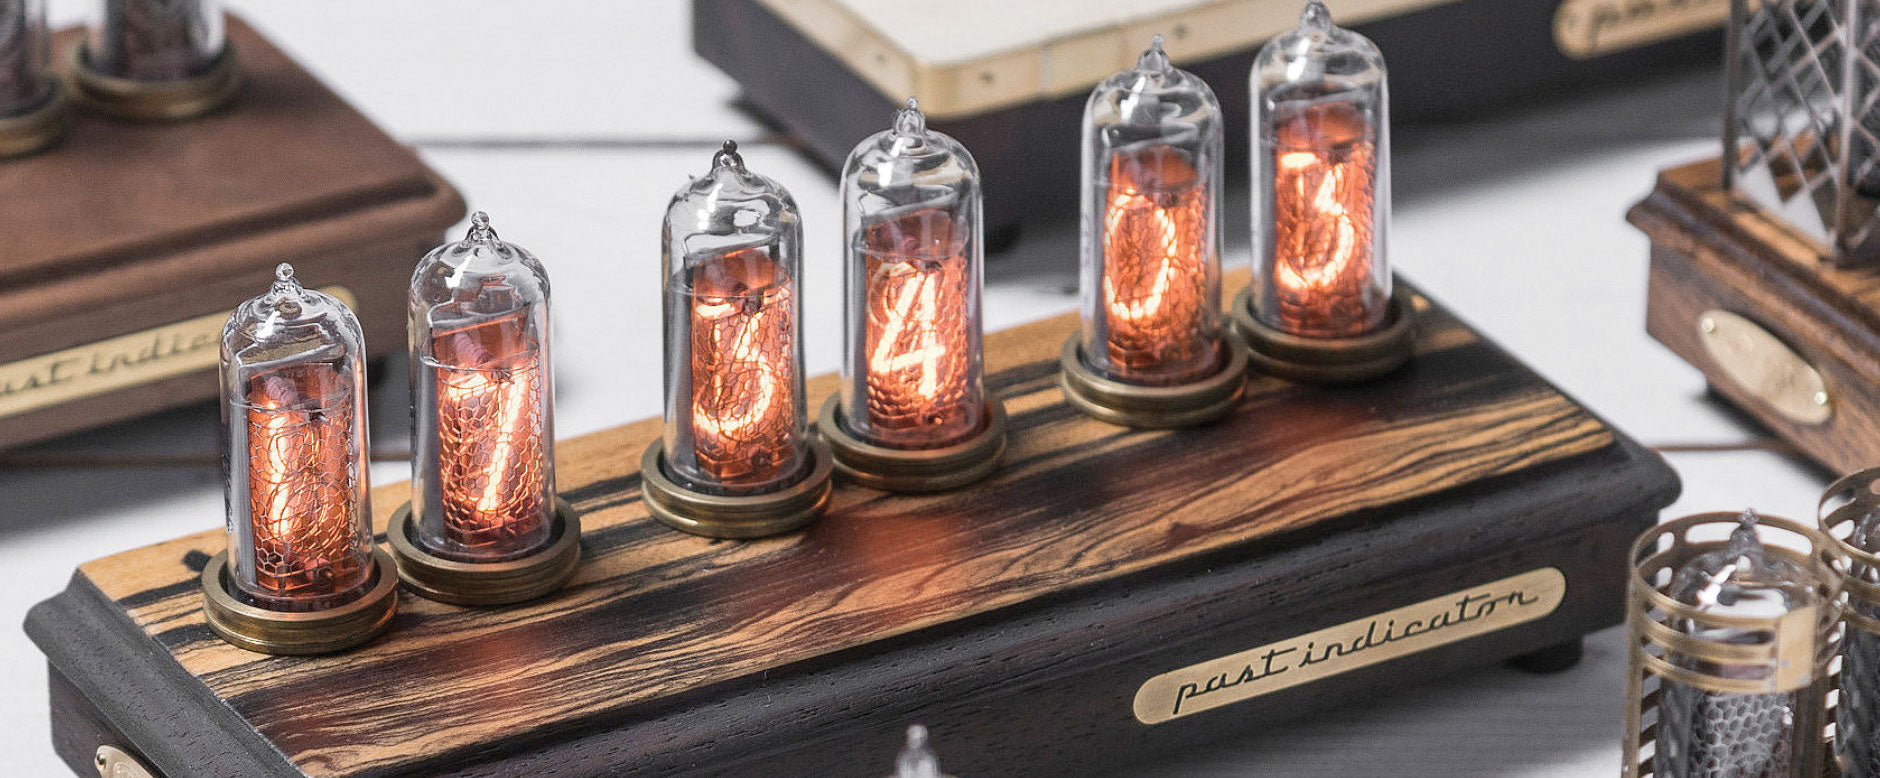 Past Indicator Nixie clocks